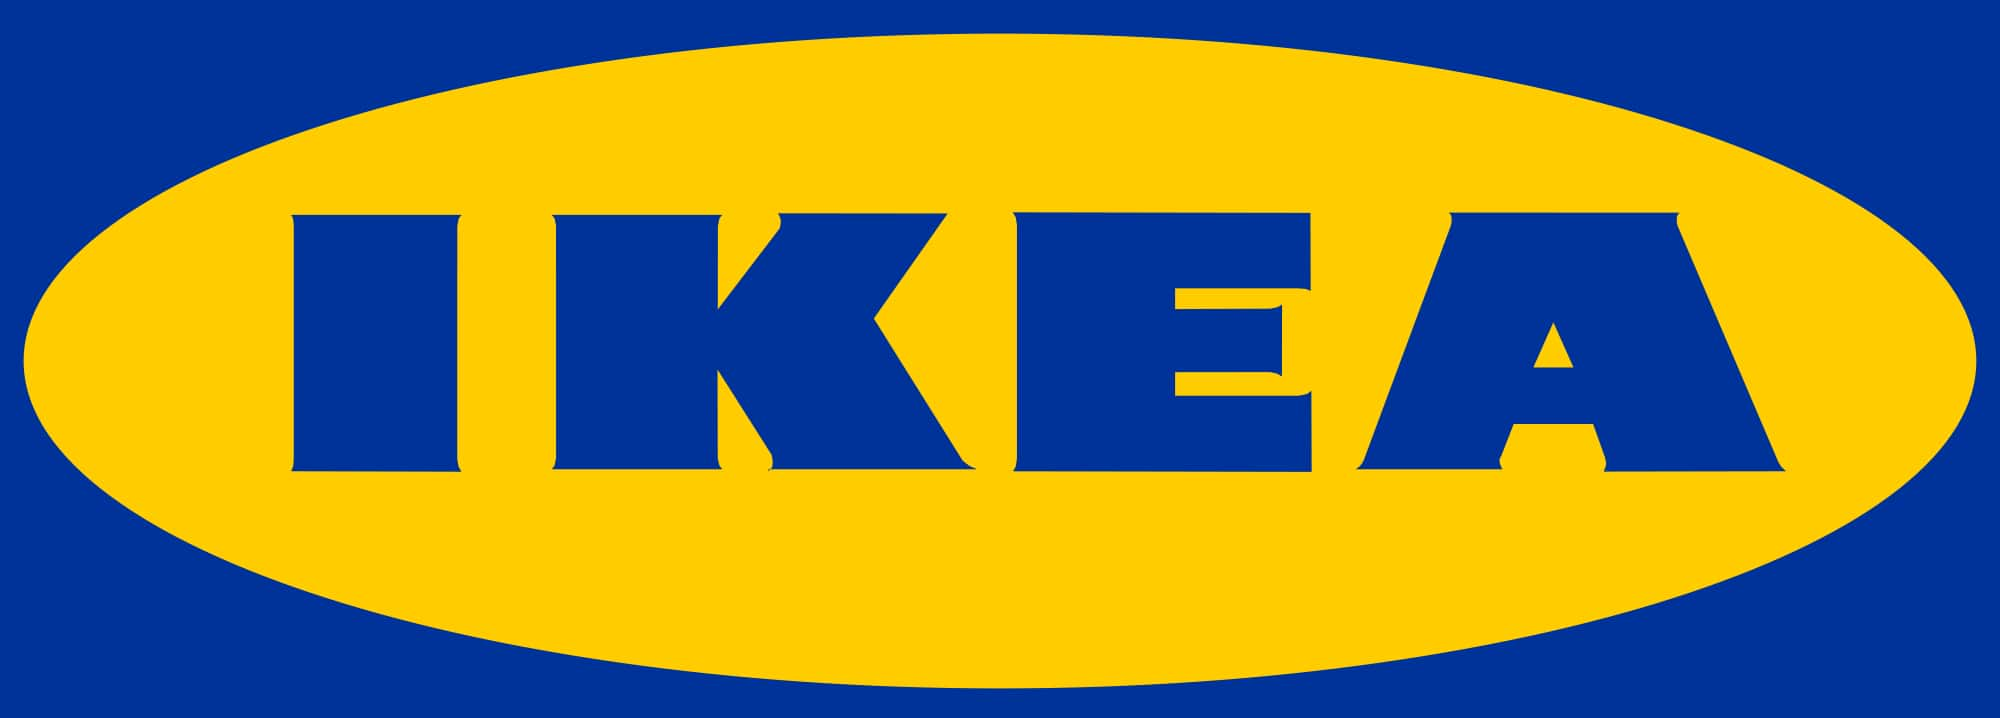 Deal Image. IKEA In Store Printable Coupon  Additional Savings   Slickdeals net